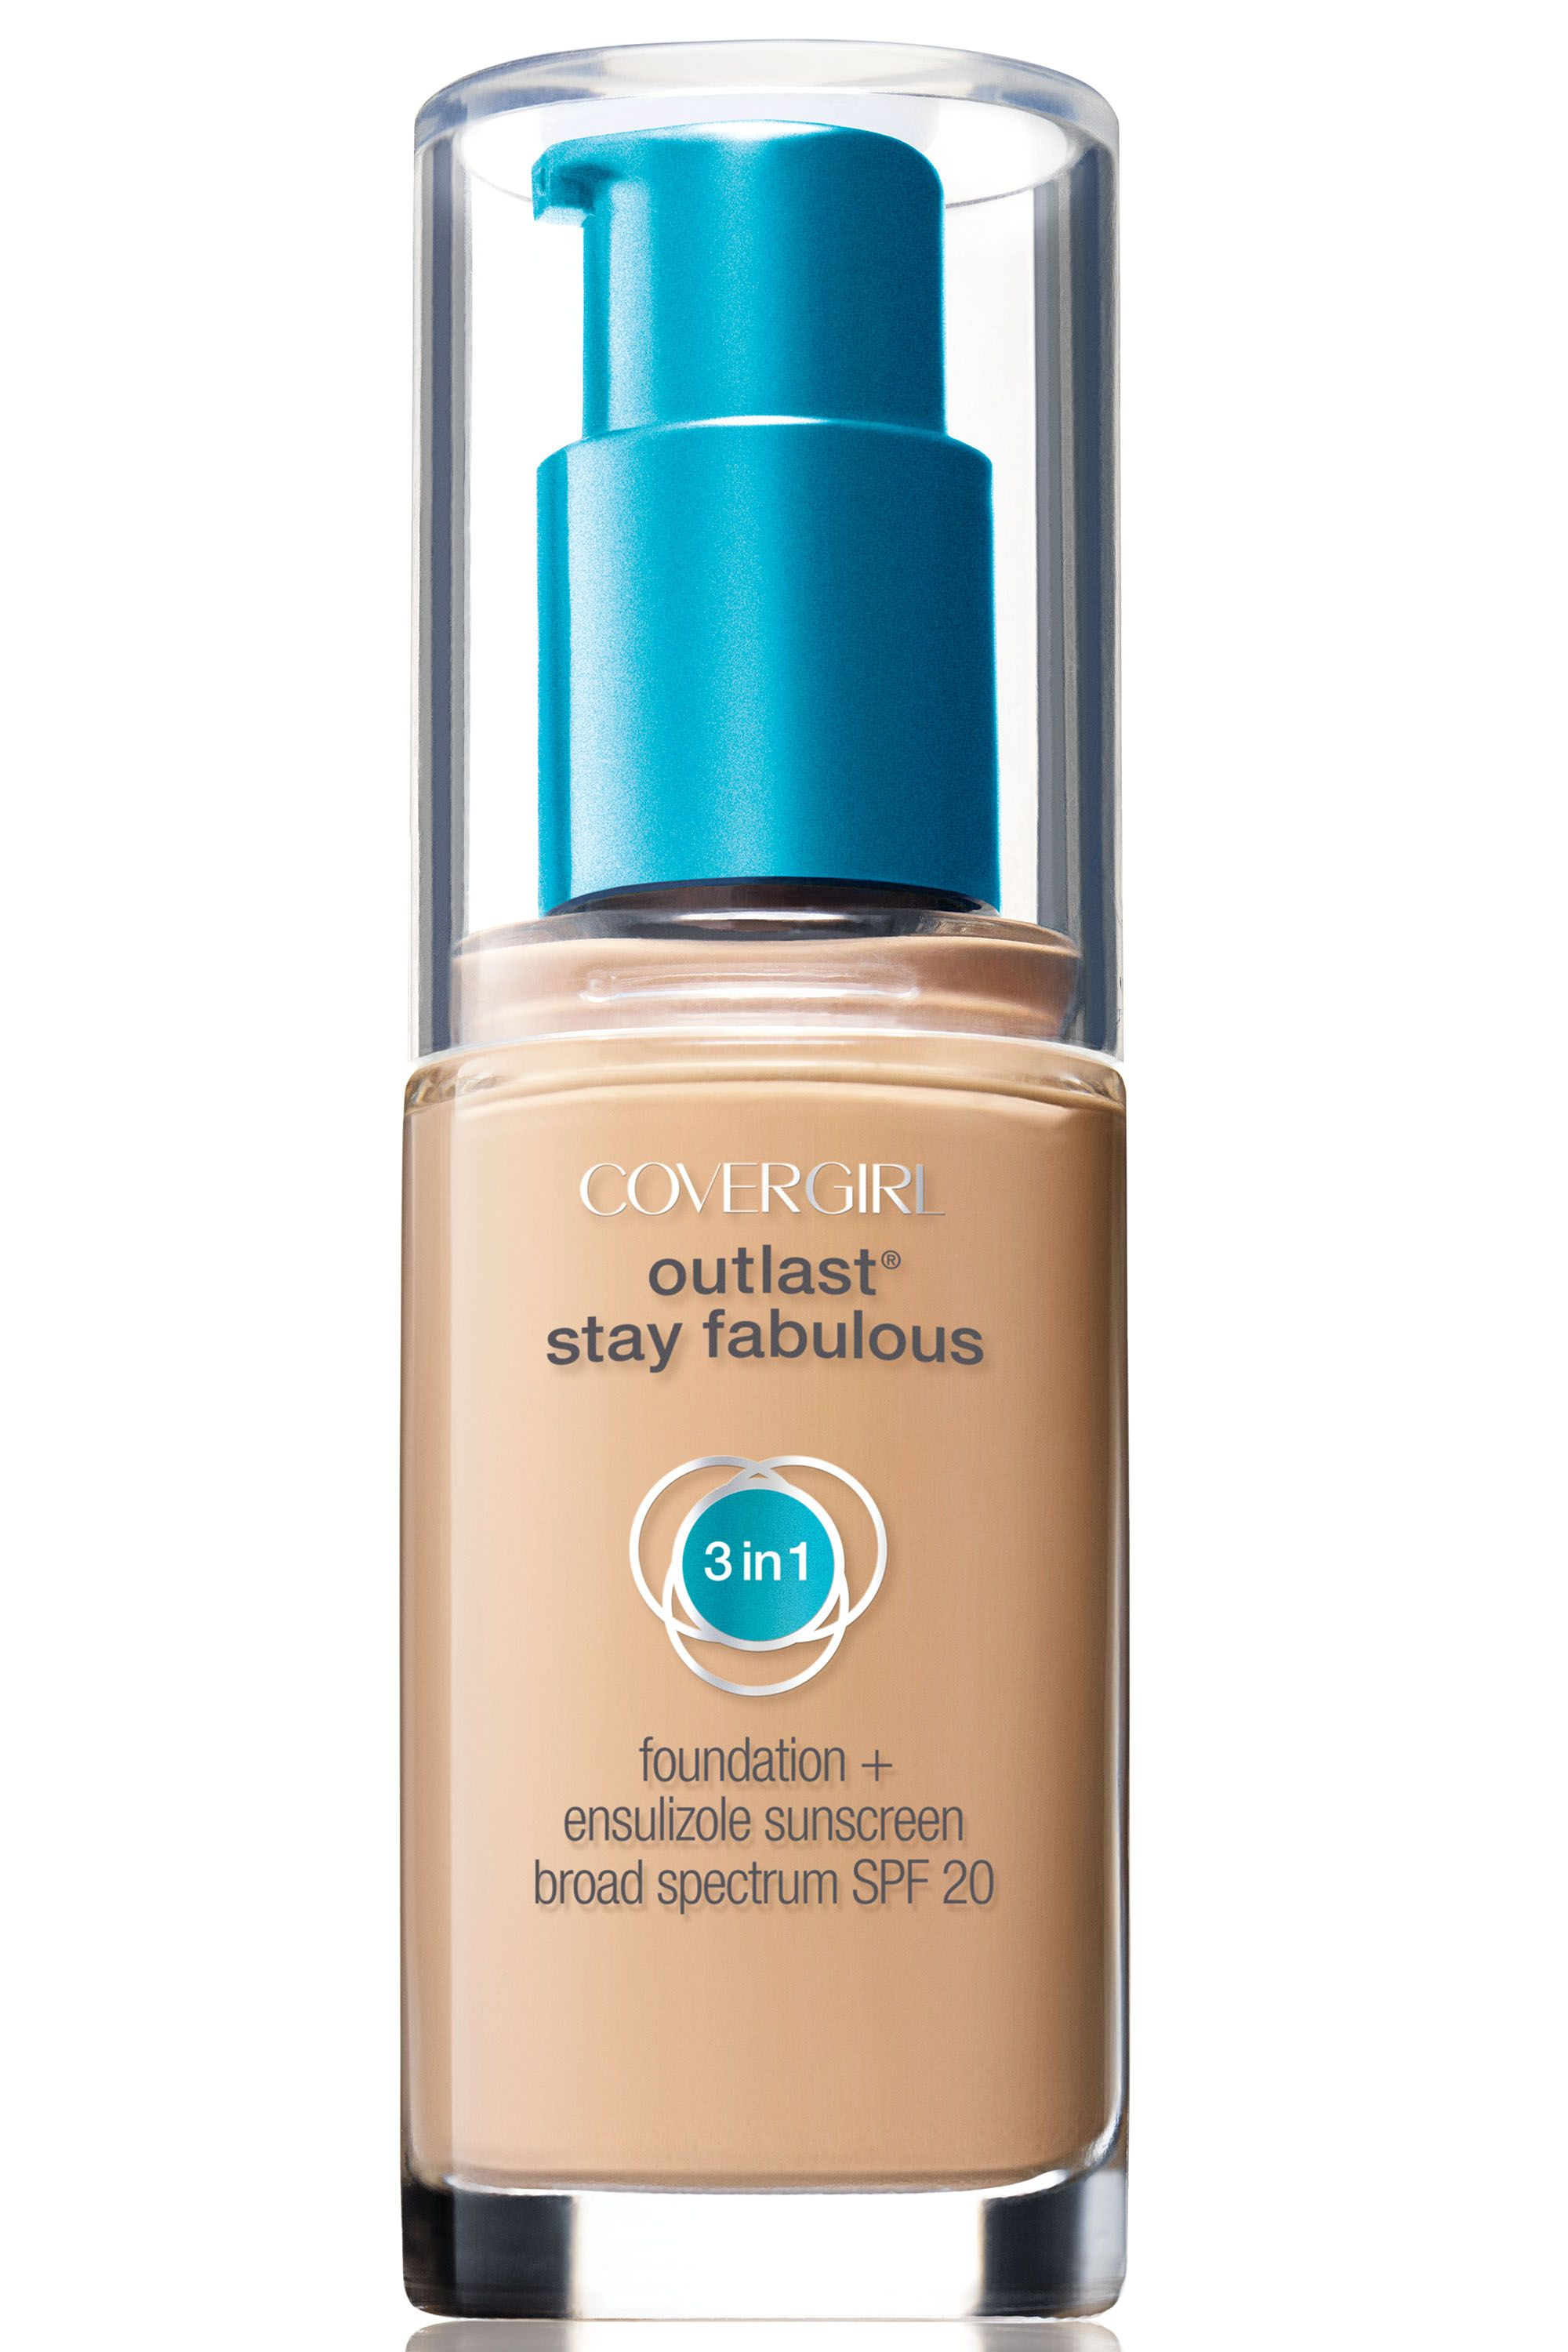 "<p>Pecheux applied foundation to Perry's skin using his fingers. ""When you warm it up in your hands, you make it more transparent,"" he explains.</p><p><strong>CoverGirl</strong> Outlast Stay Fabulous 3-in-1 Foundation, $11, <a href=""http://www.covergirl.com/beauty-products/face-makeup/foundation-makeup/outlast-3-in-1-foundation"" target=""_blank"">covergirl.com</a>.</p>"